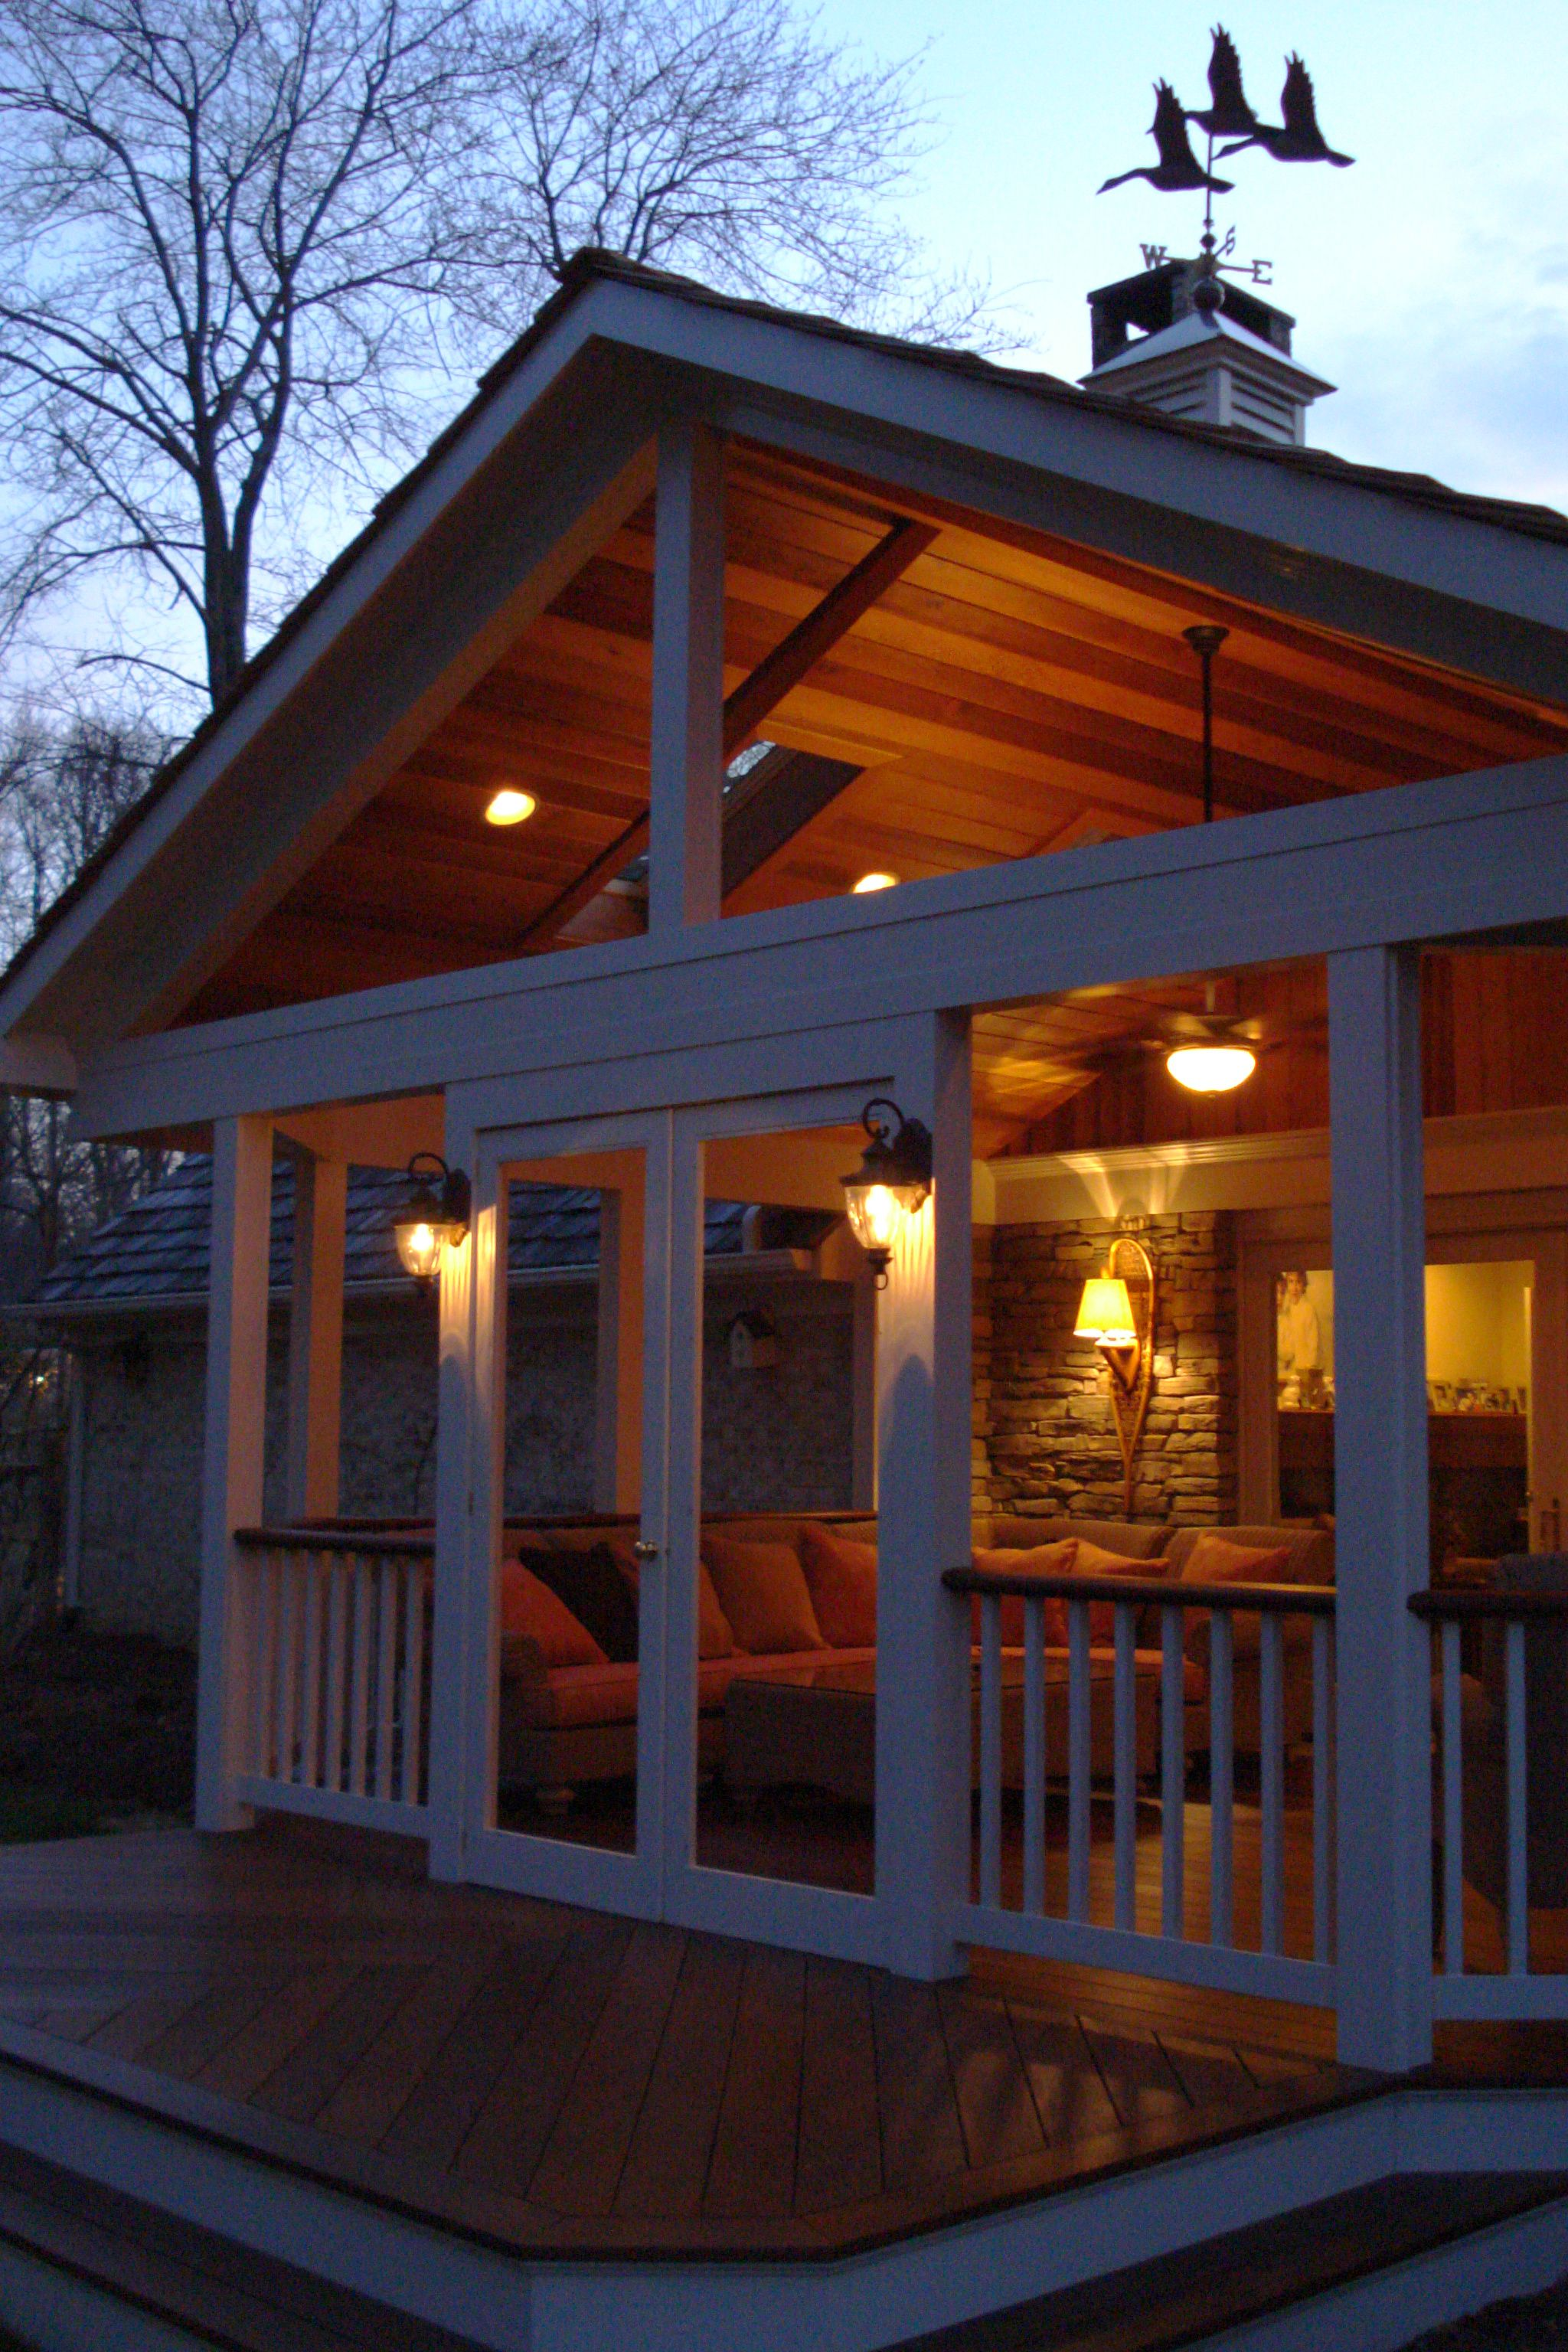 Top 7 Most Stunning Enclosed Patio Designs and Their Costs ... on Covered Patio Design Ideas id=41716